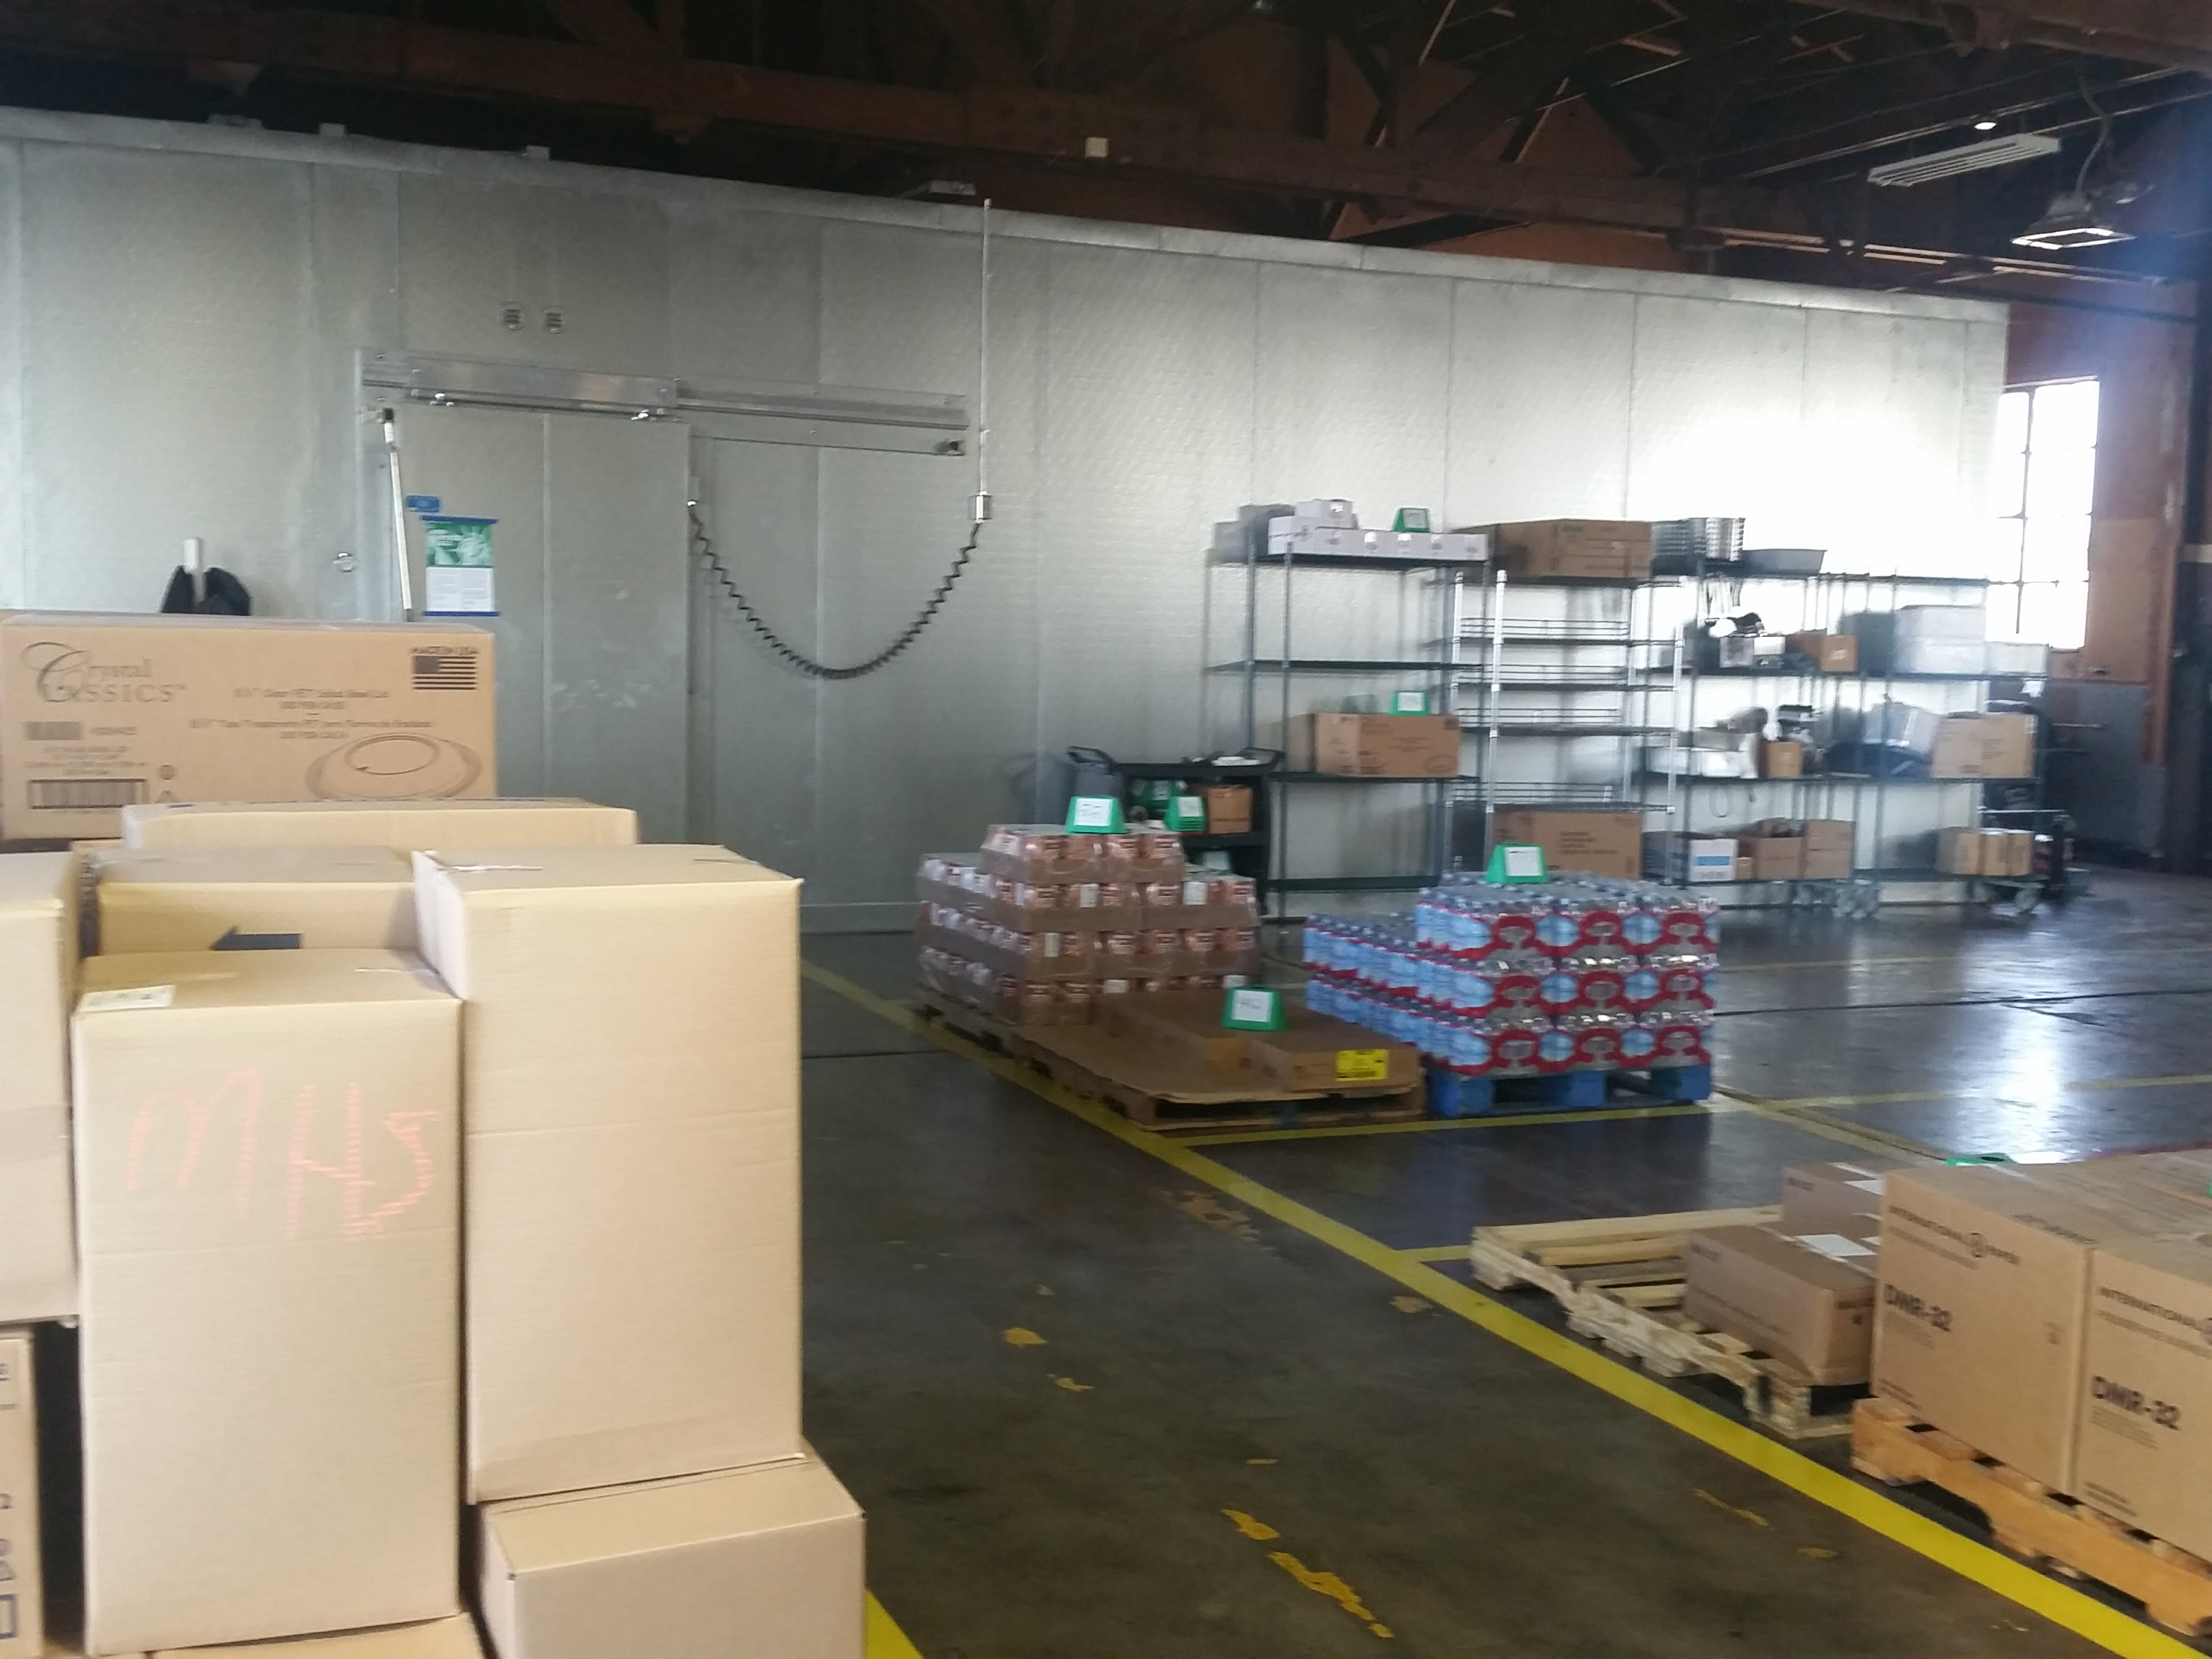 Image: Warehouse storage items